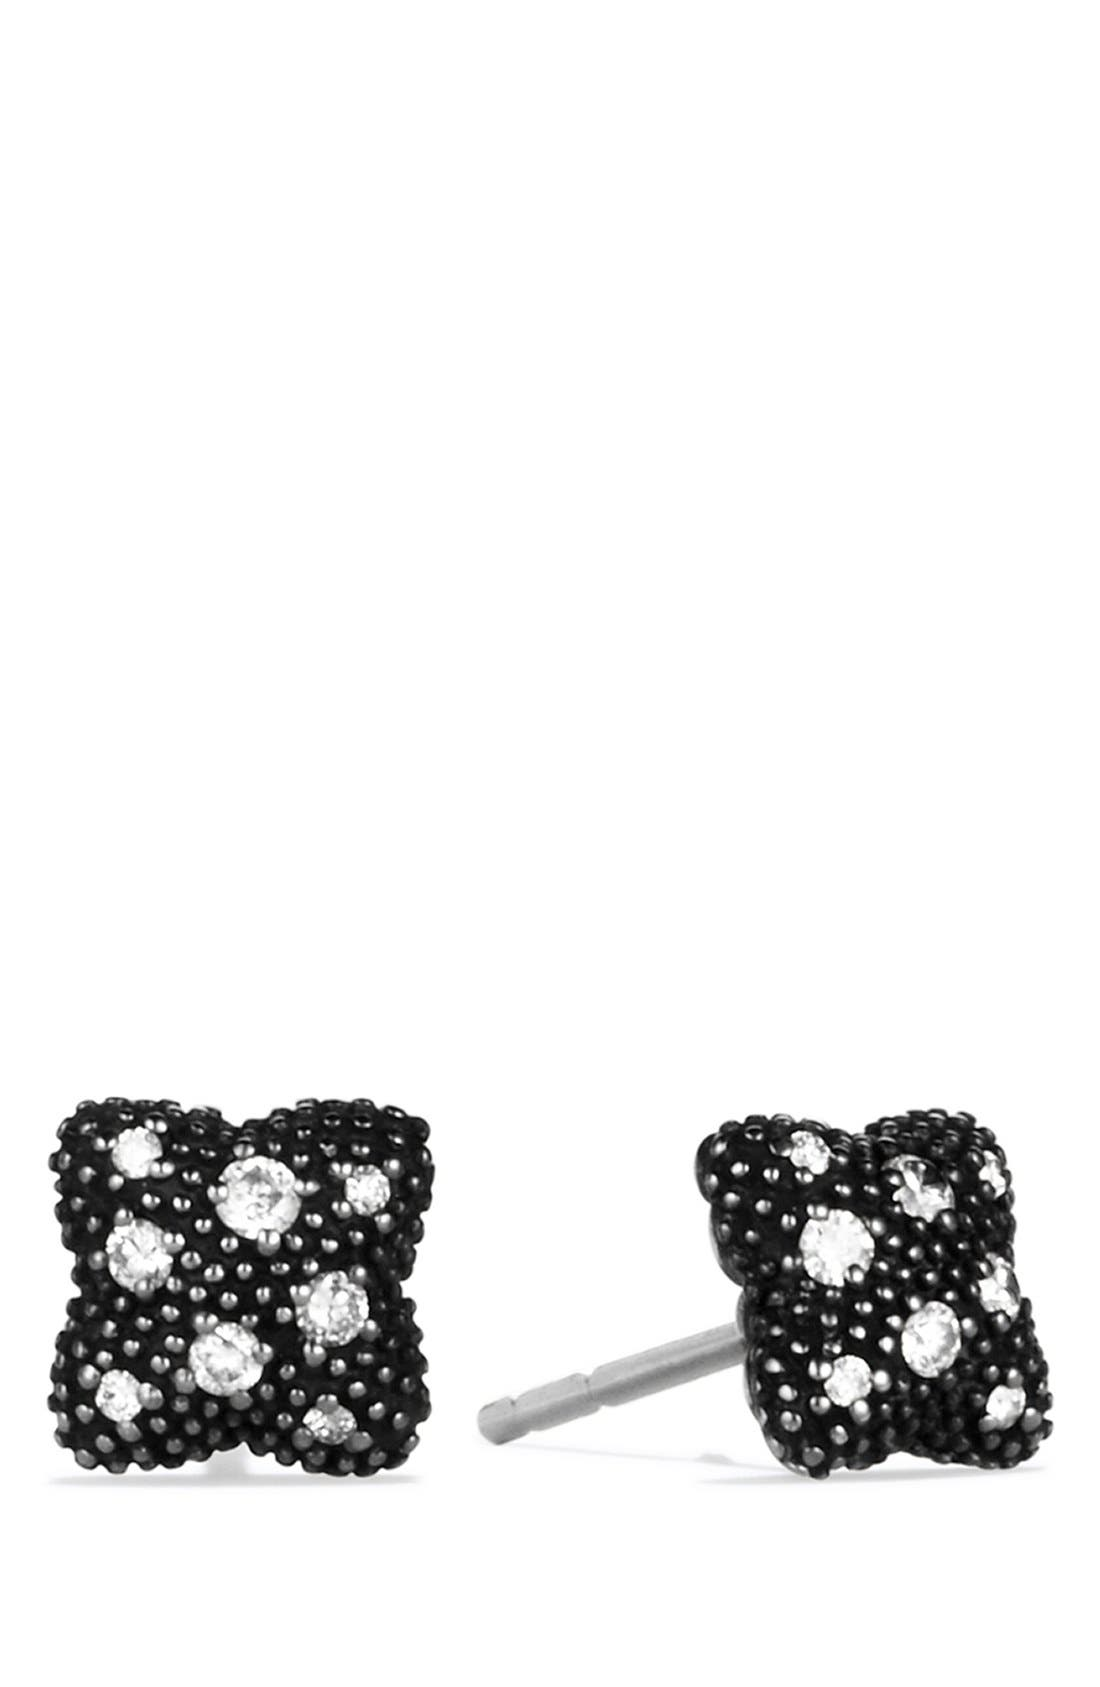 Alternate Image 1 Selected - David Yurman 'Midnight Mélange - Quatrefoil' Earrings with Diamonds